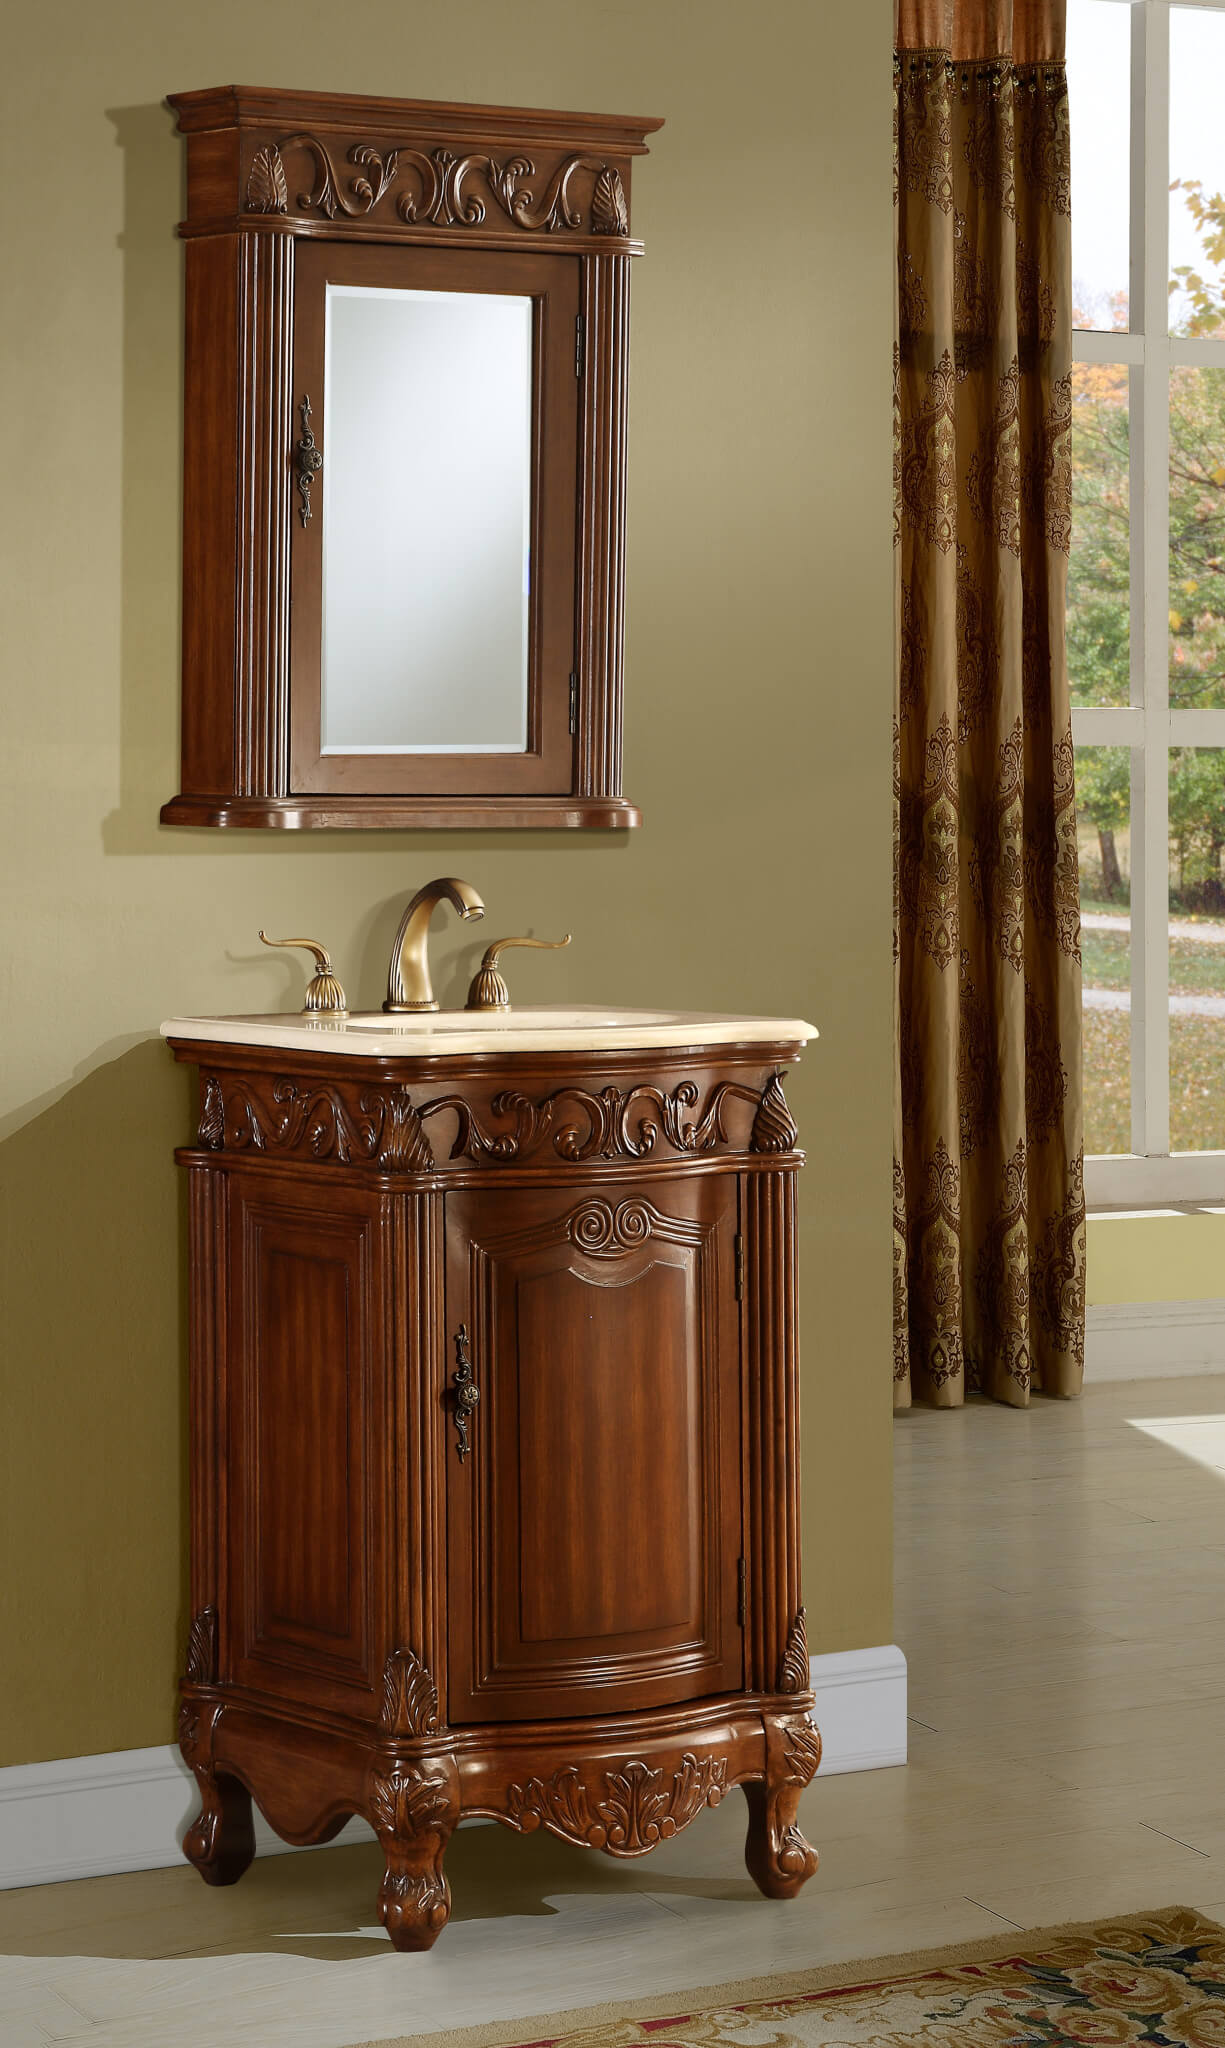 21 Quot Tuscany Bathroom Vanity Antique Recreations